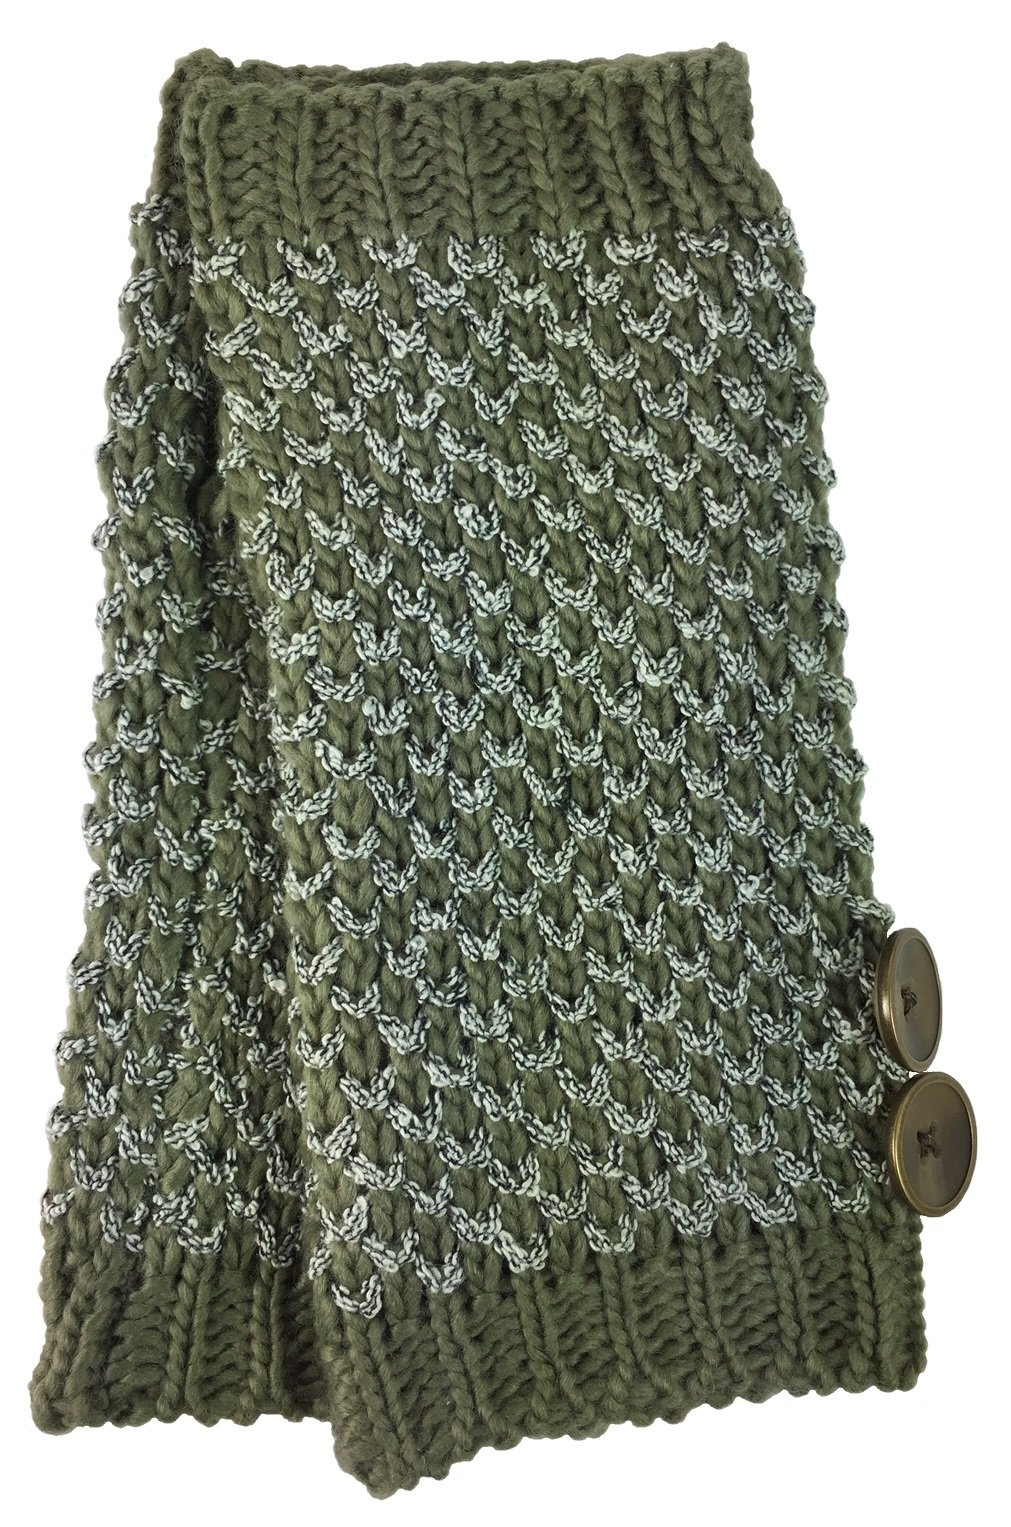 Simply Noelle Bumble Wrist Warmers with Buttons (Fern)